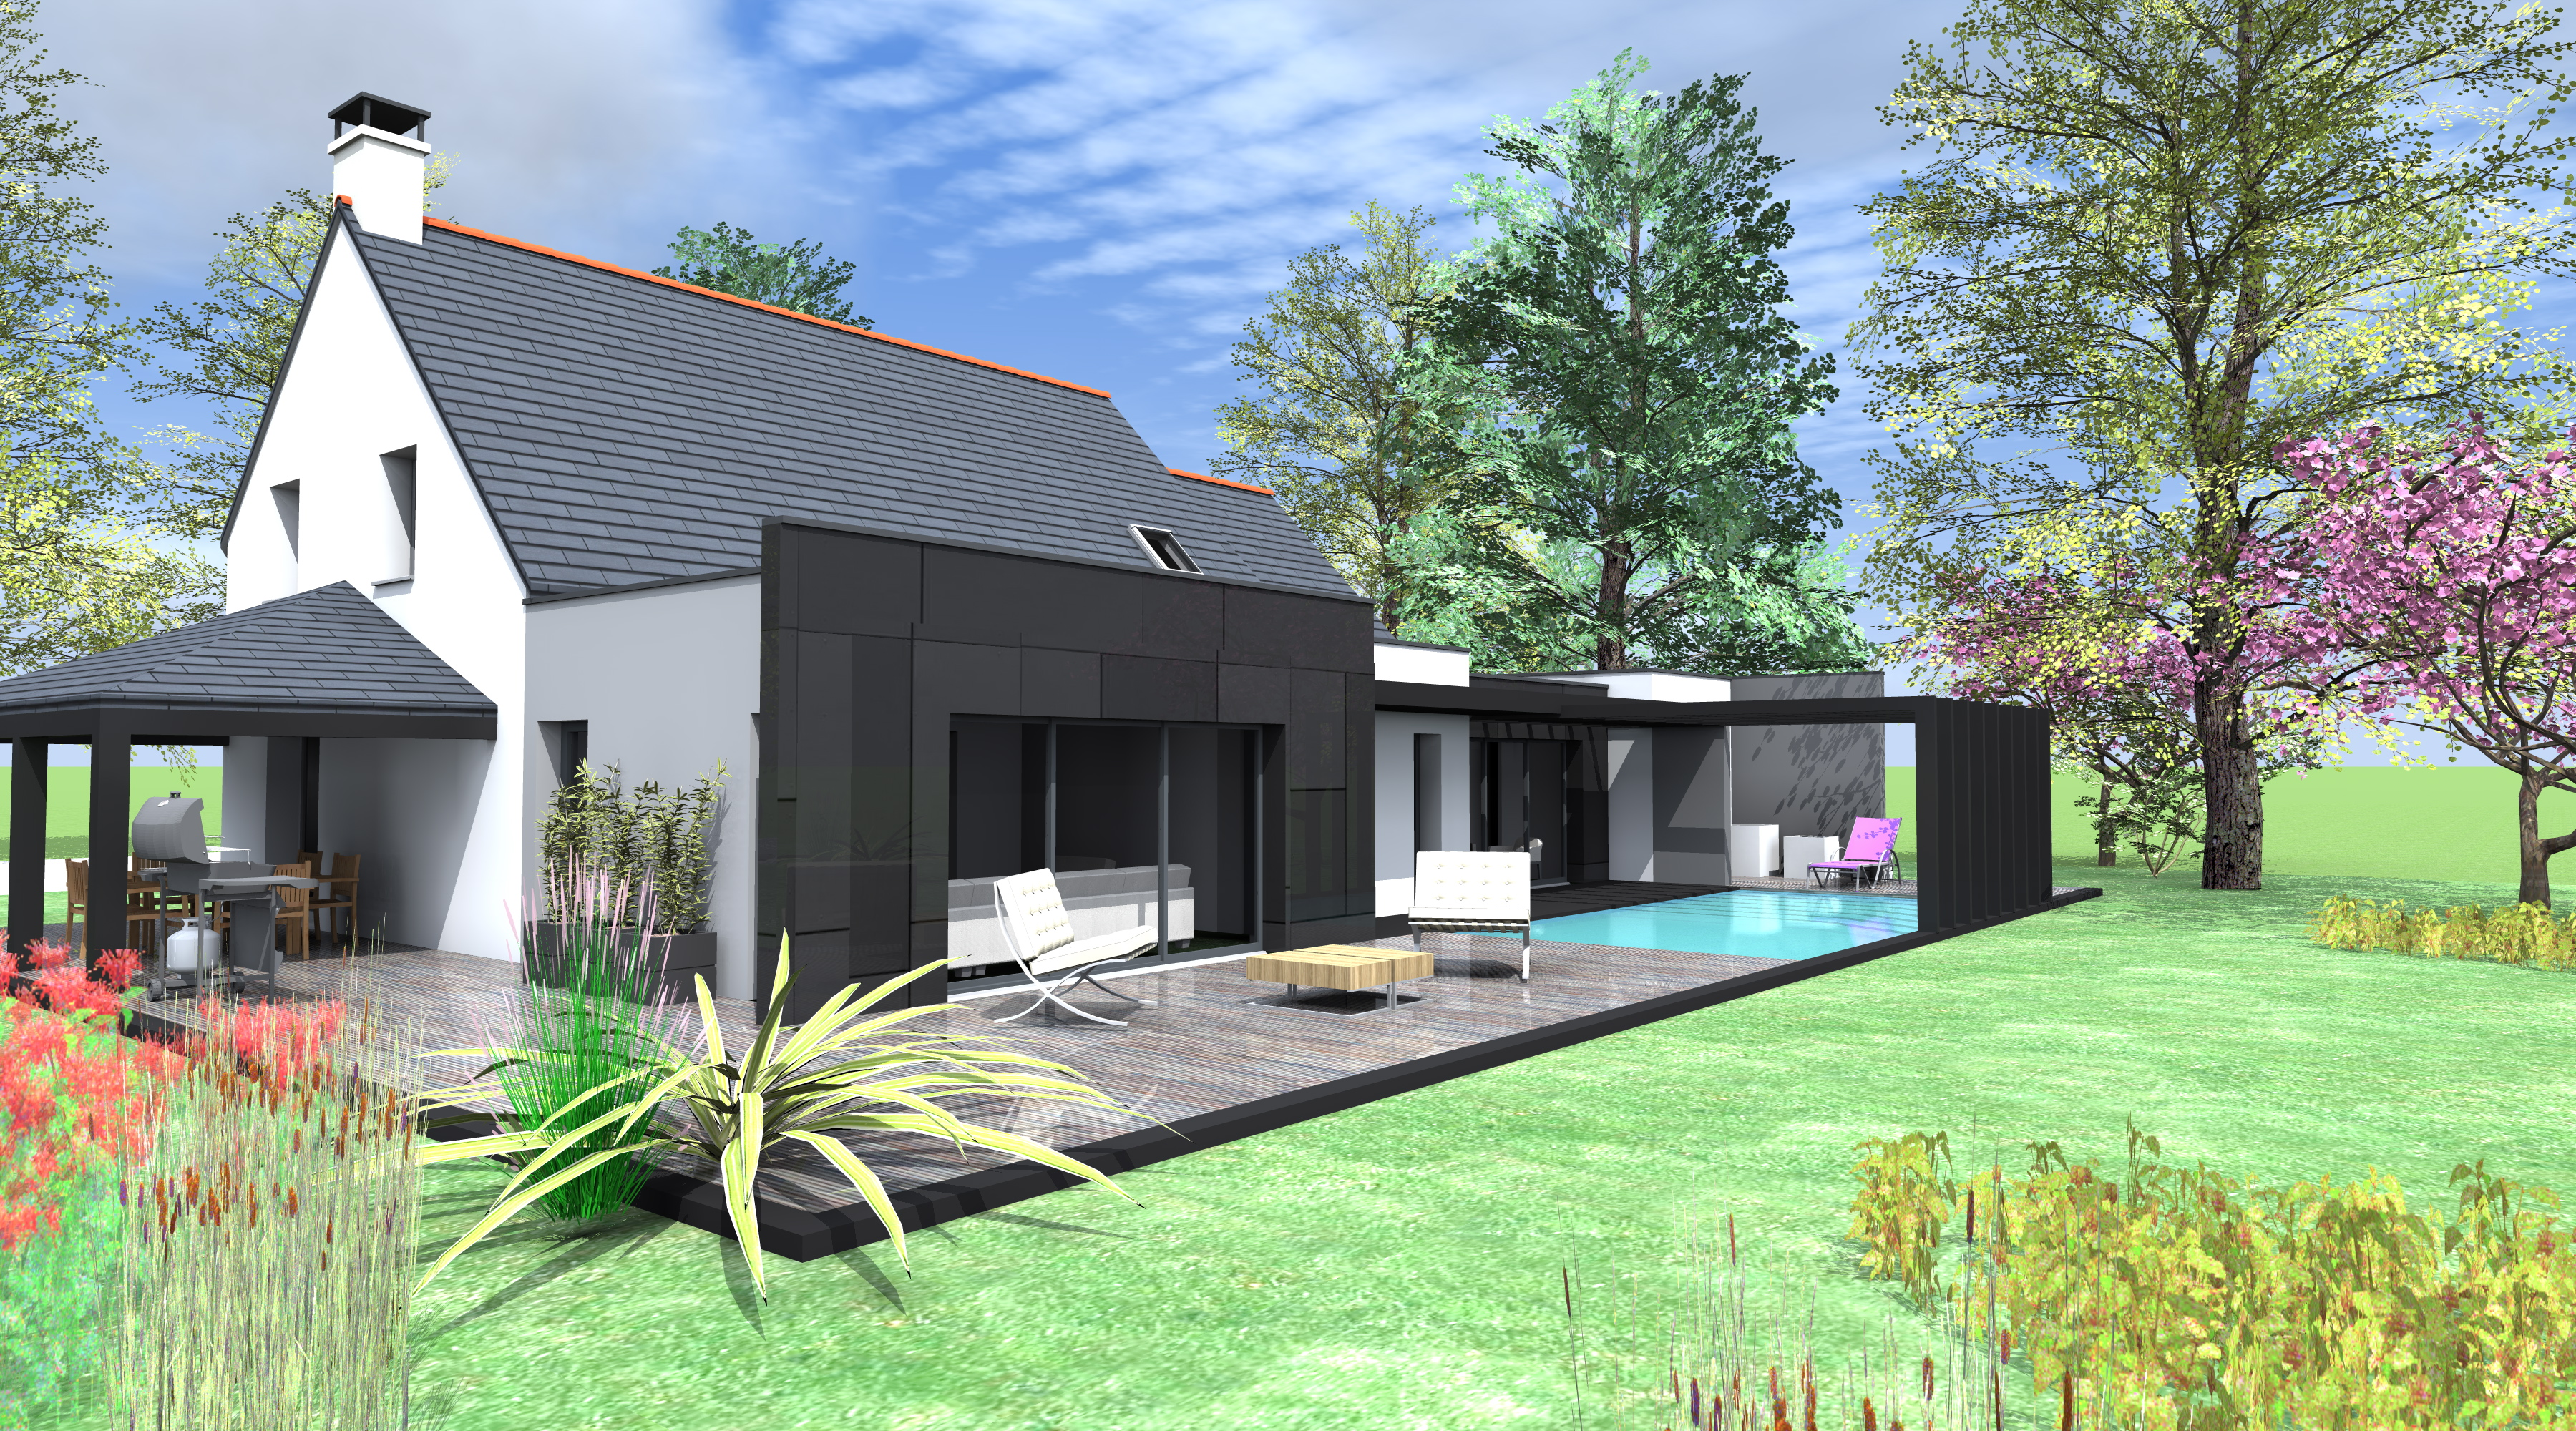 Projet k k 1 2 vue architecte lise roturier rennes for Extension contemporaine maison traditionnelle